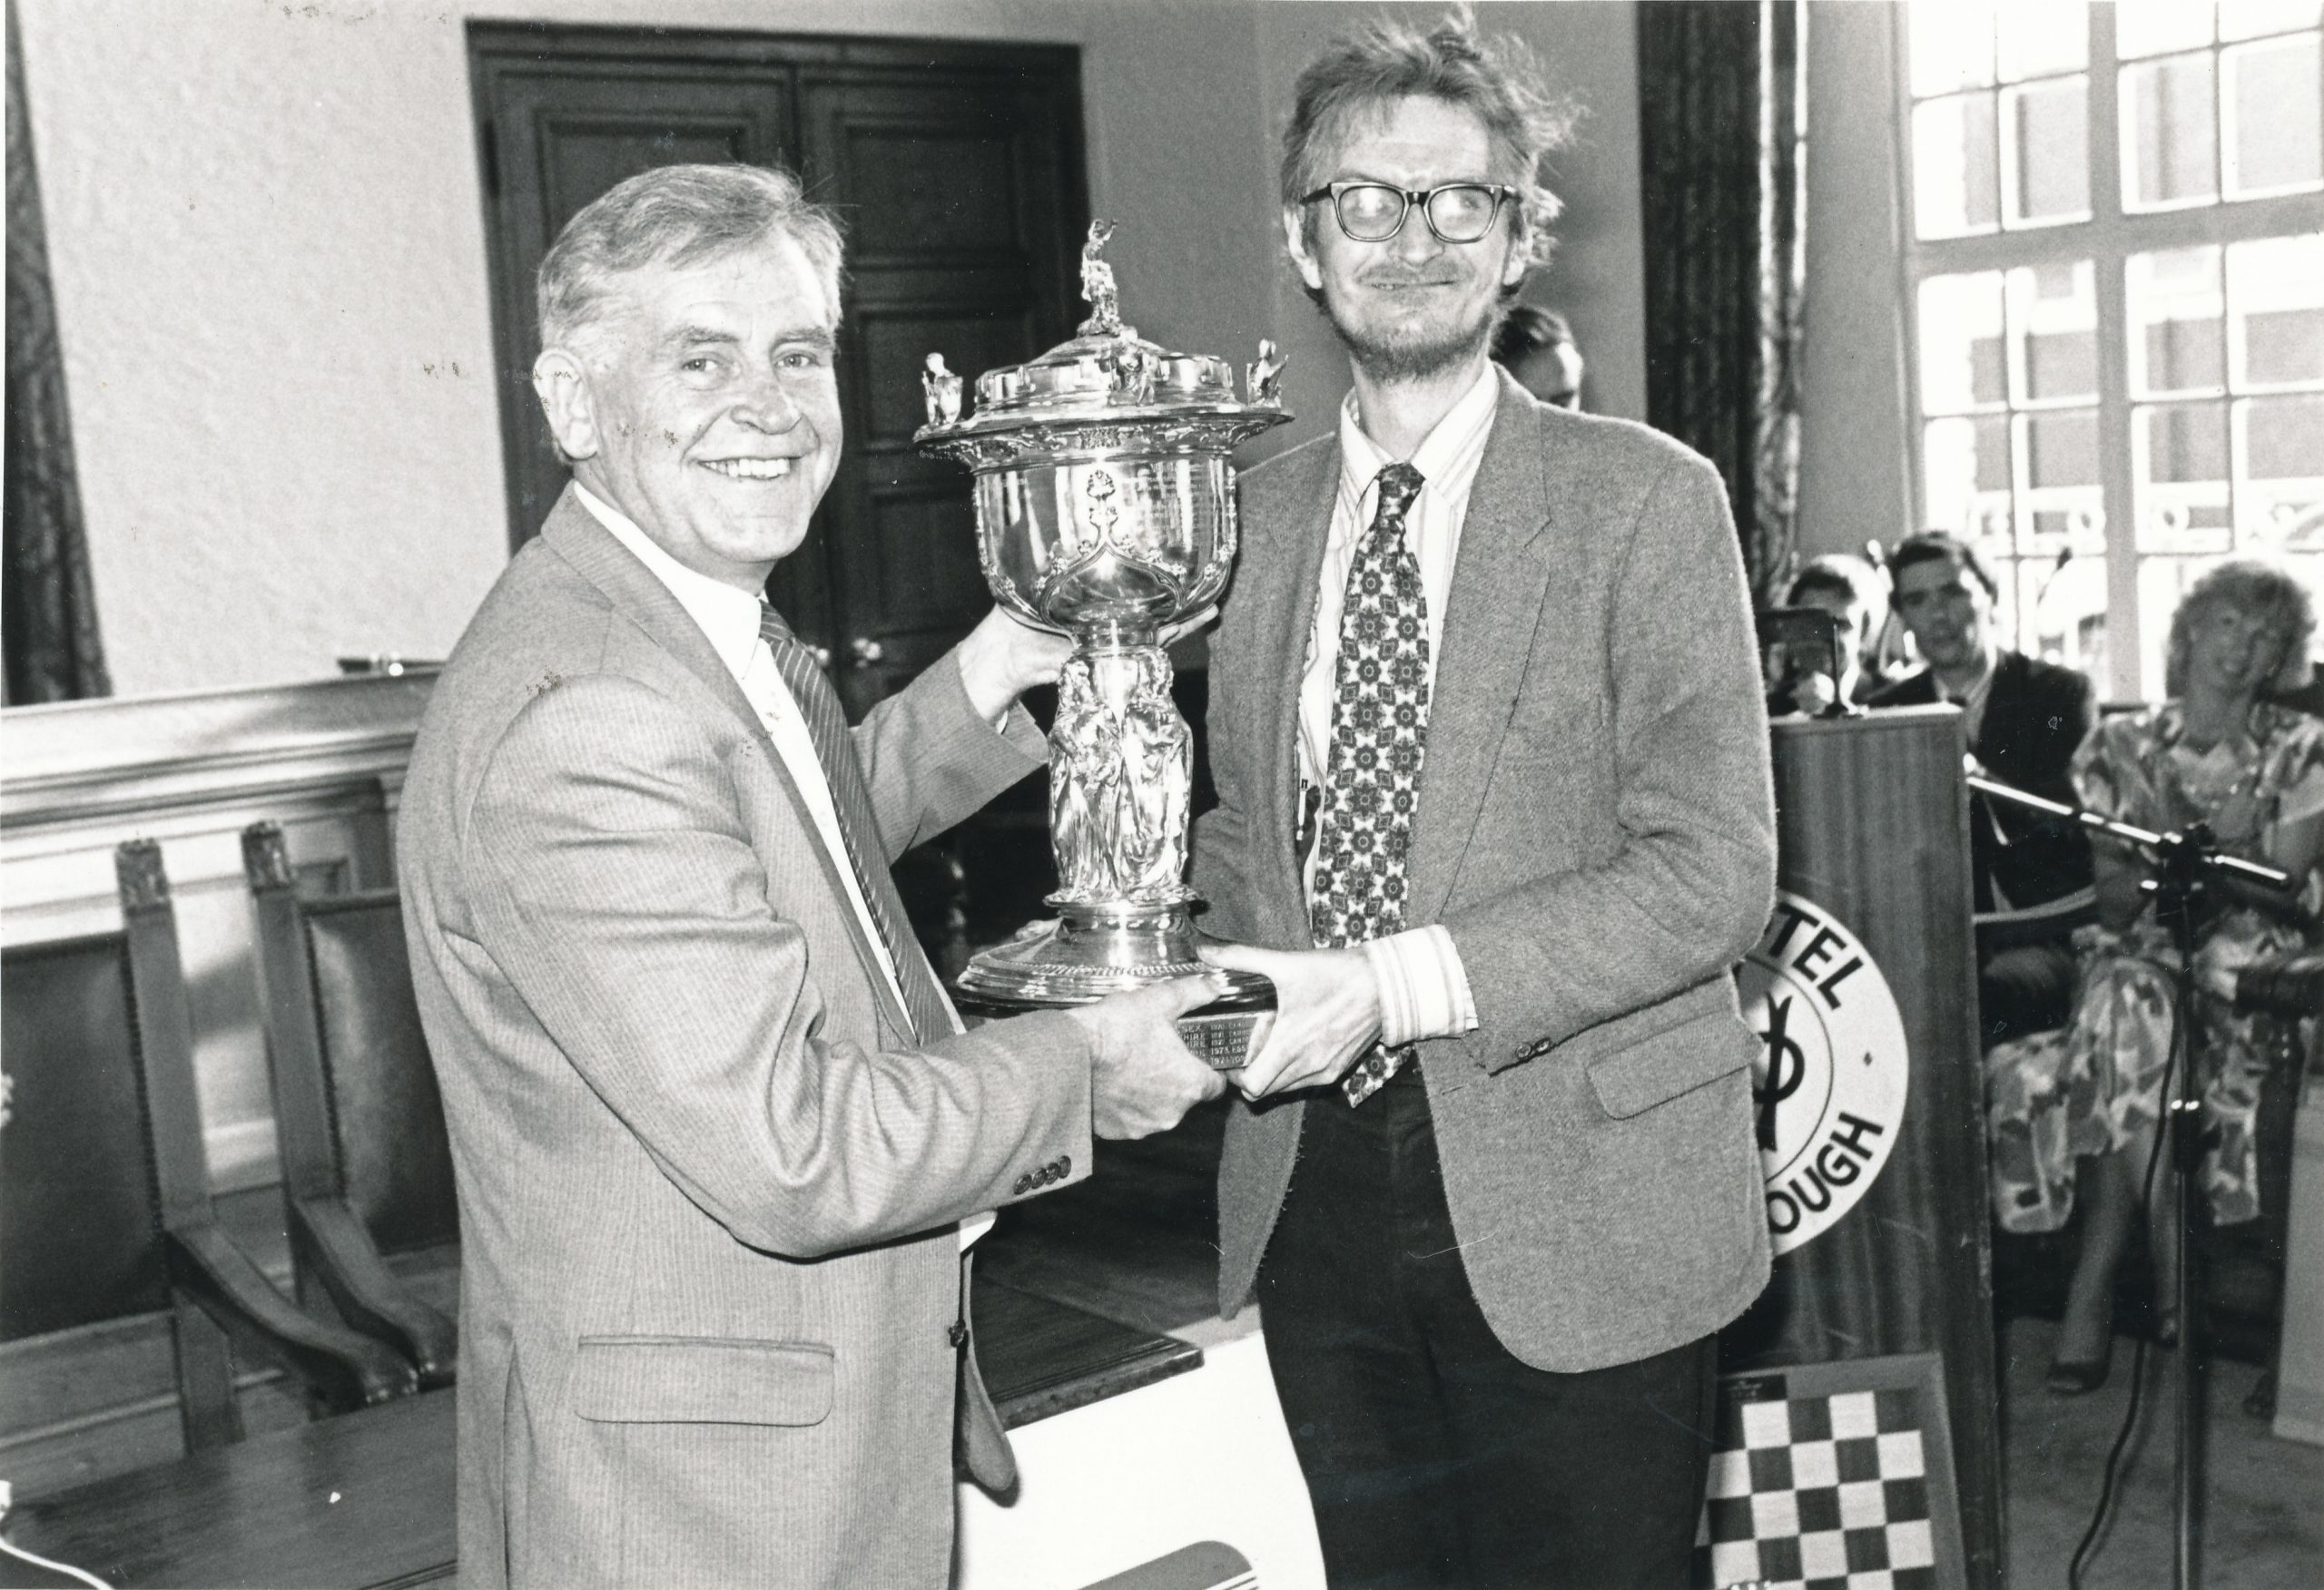 Magnus Magnusson presents Andrew Whiteley (right) with the BCF County Championship trophy as Captain of the Middlesex team in 1986.